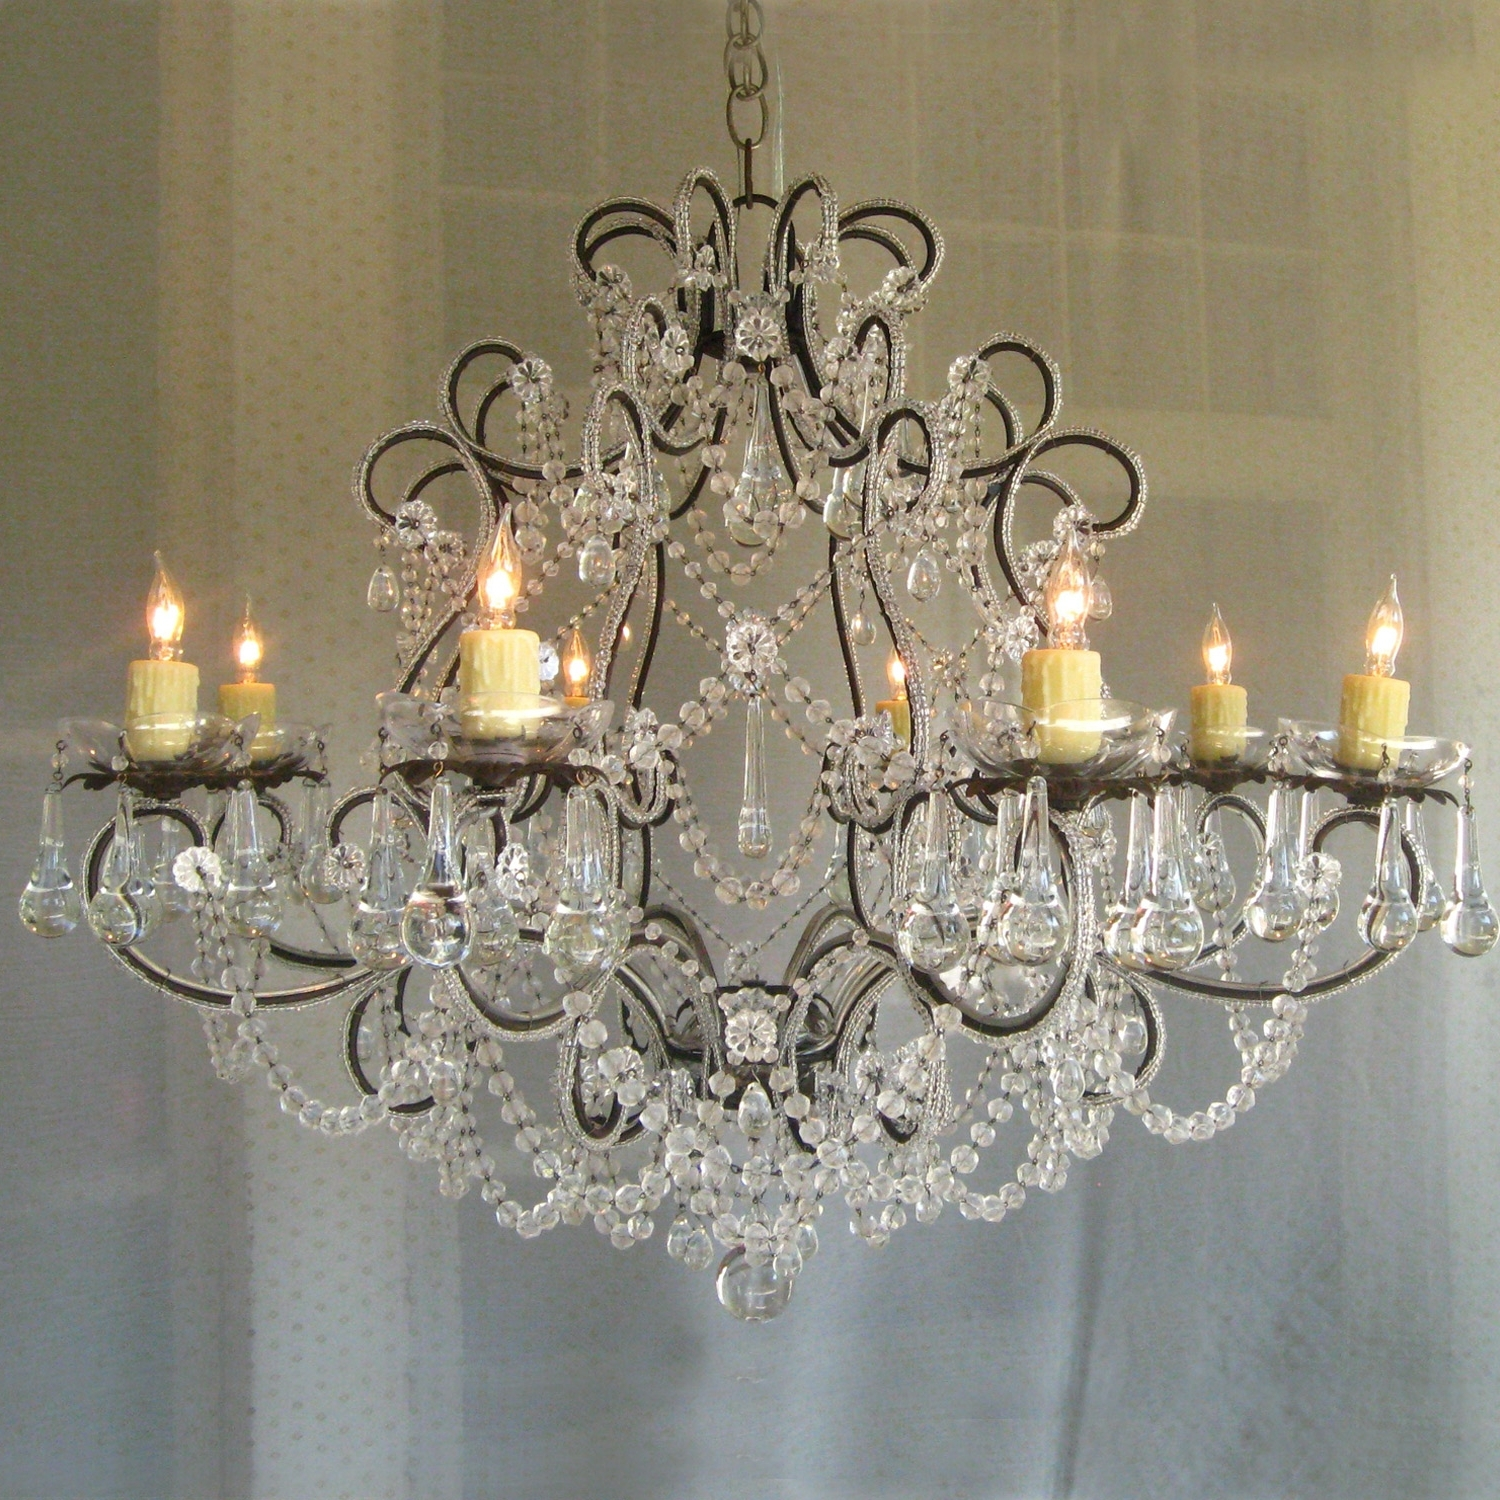 Small Shabby Chic Chandelier For Well Known Chandelier (View 3 of 15)